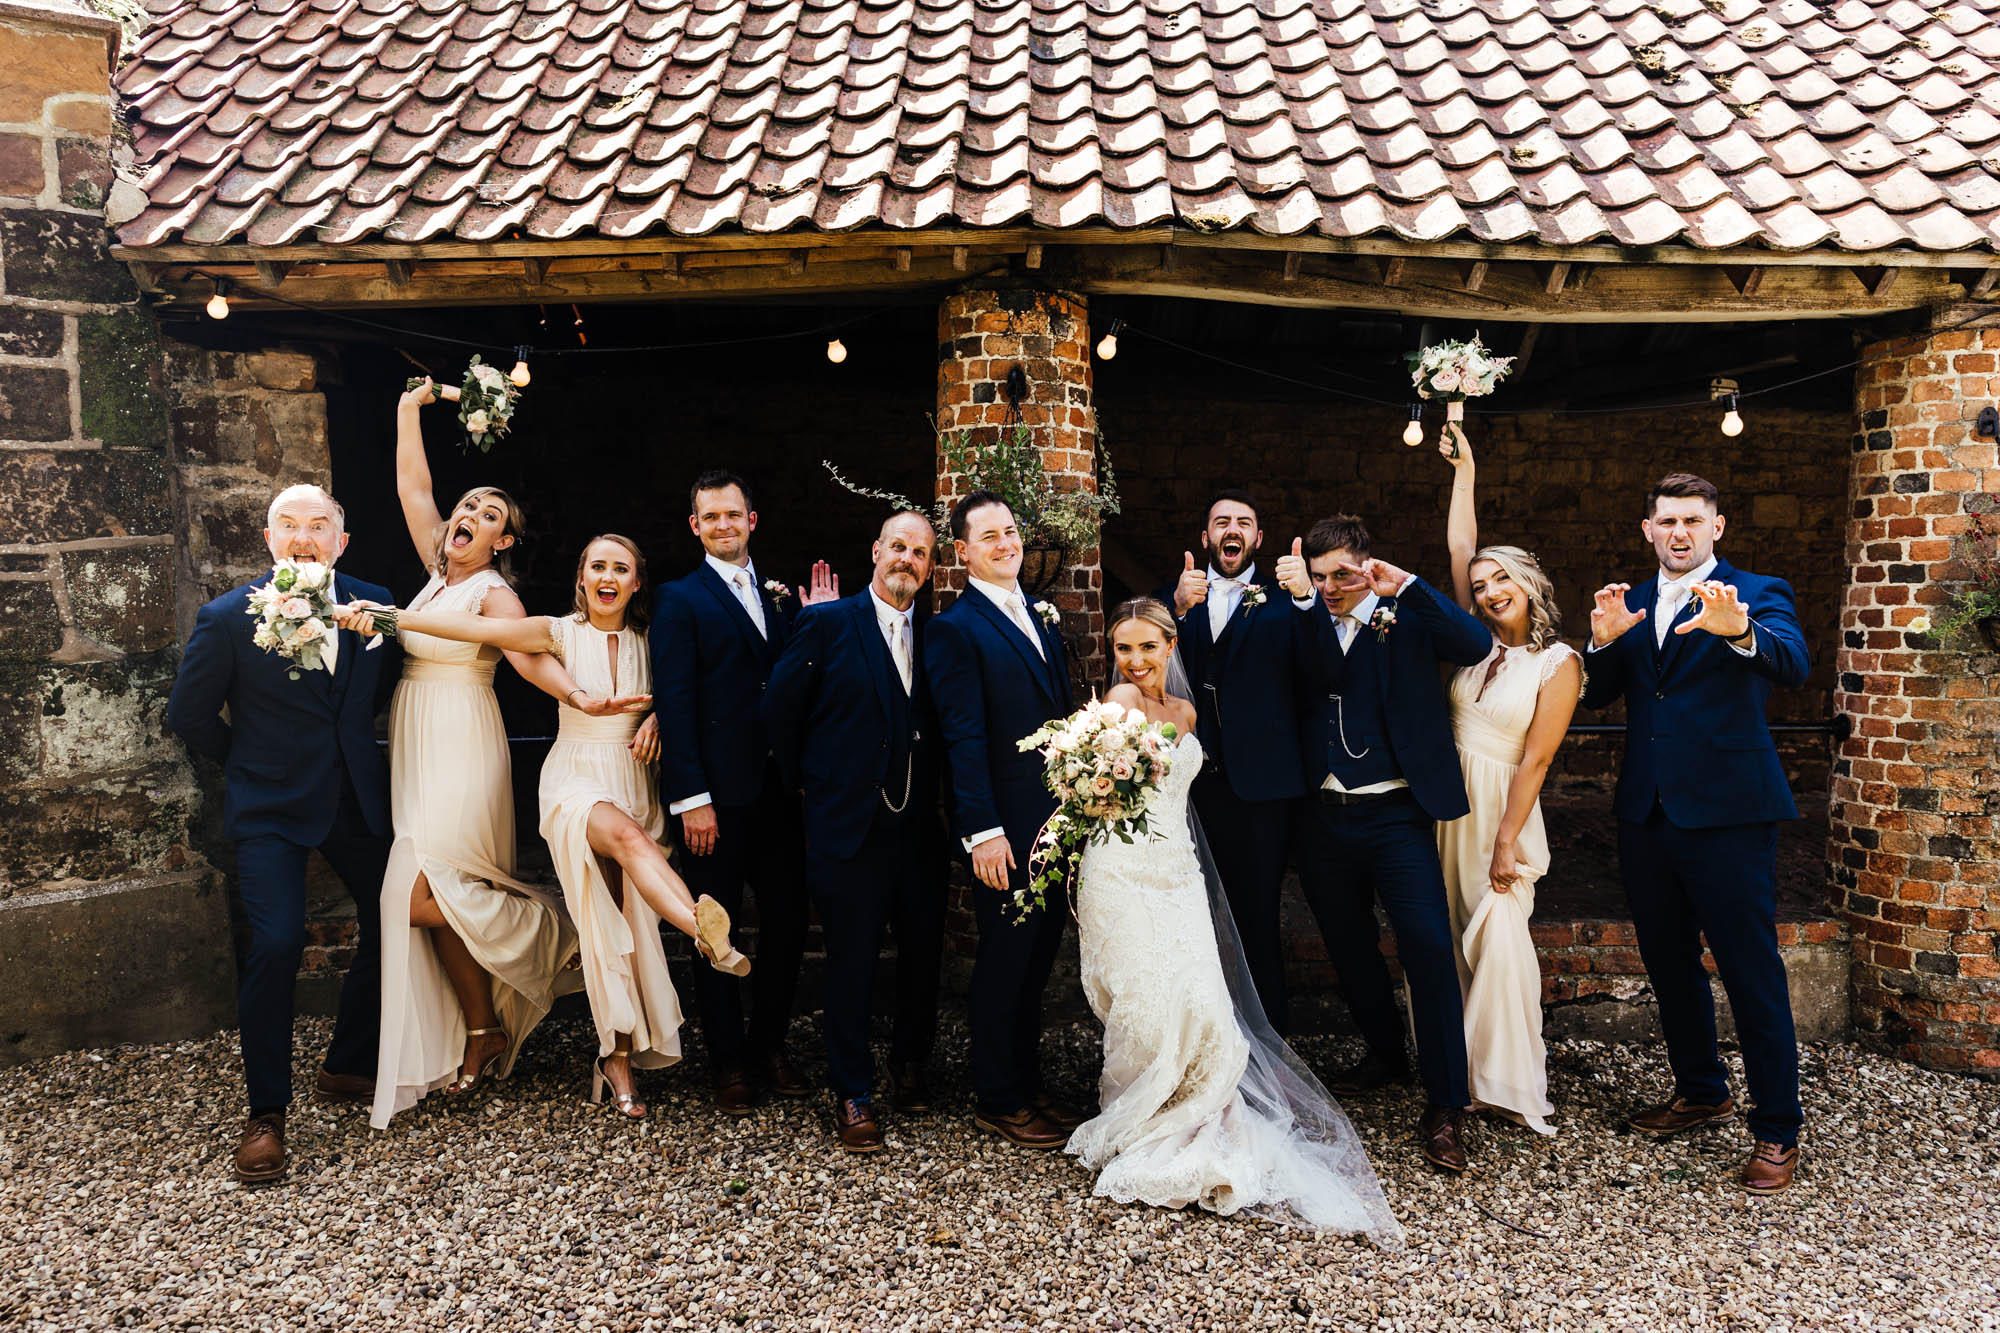 wedding-at-the-barns-at-hunsbury-hill-36